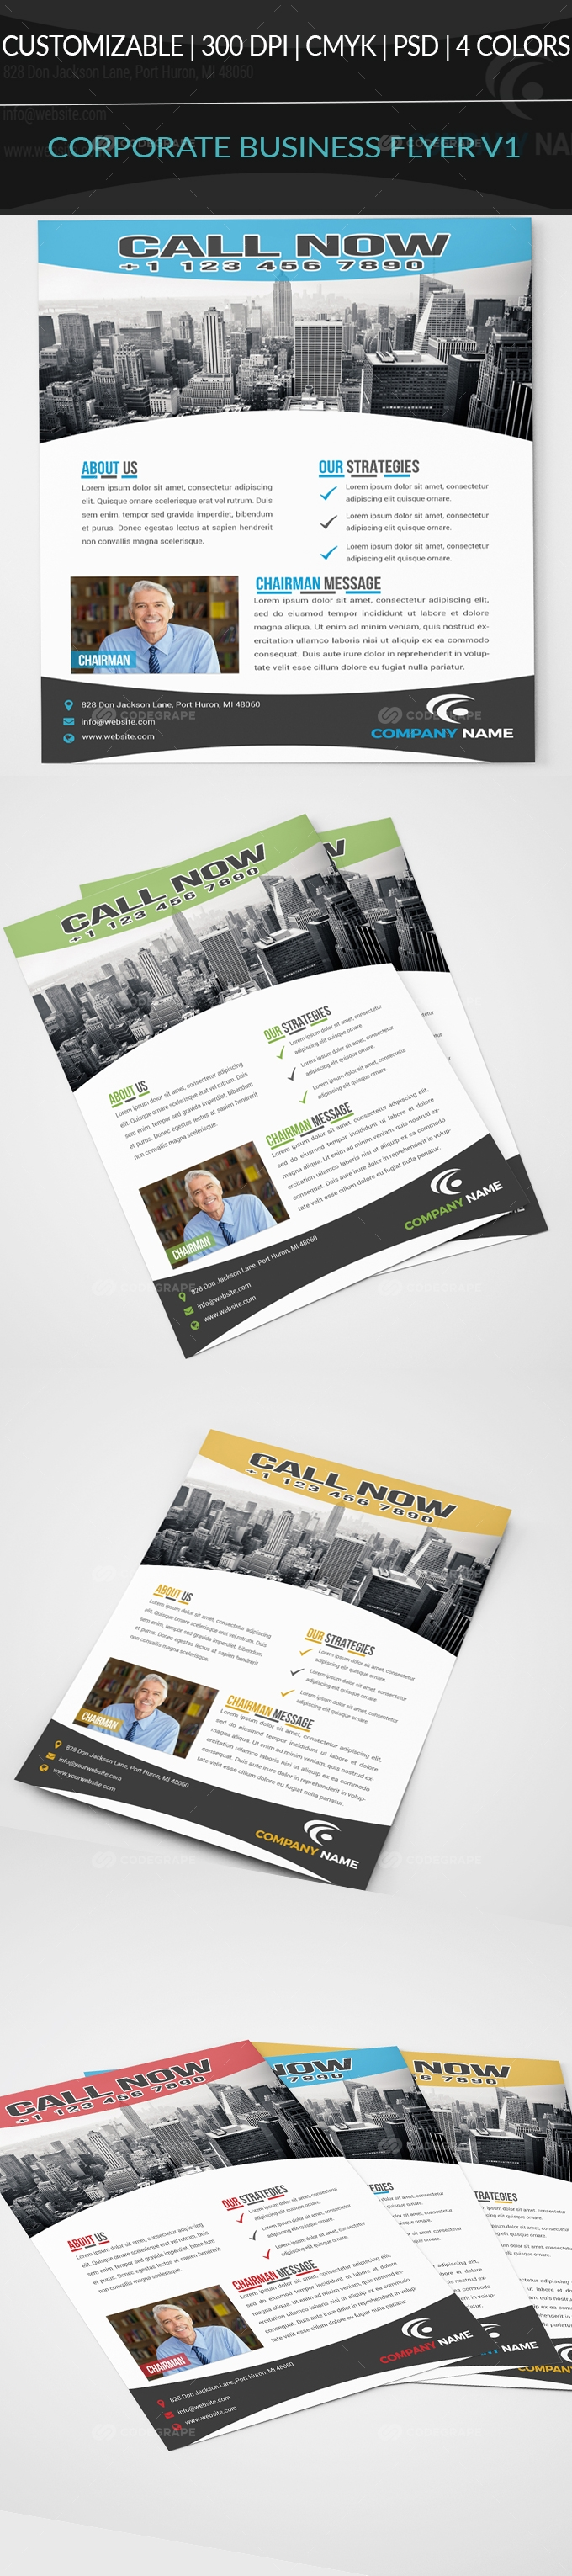 Corporate Business Flyer V3